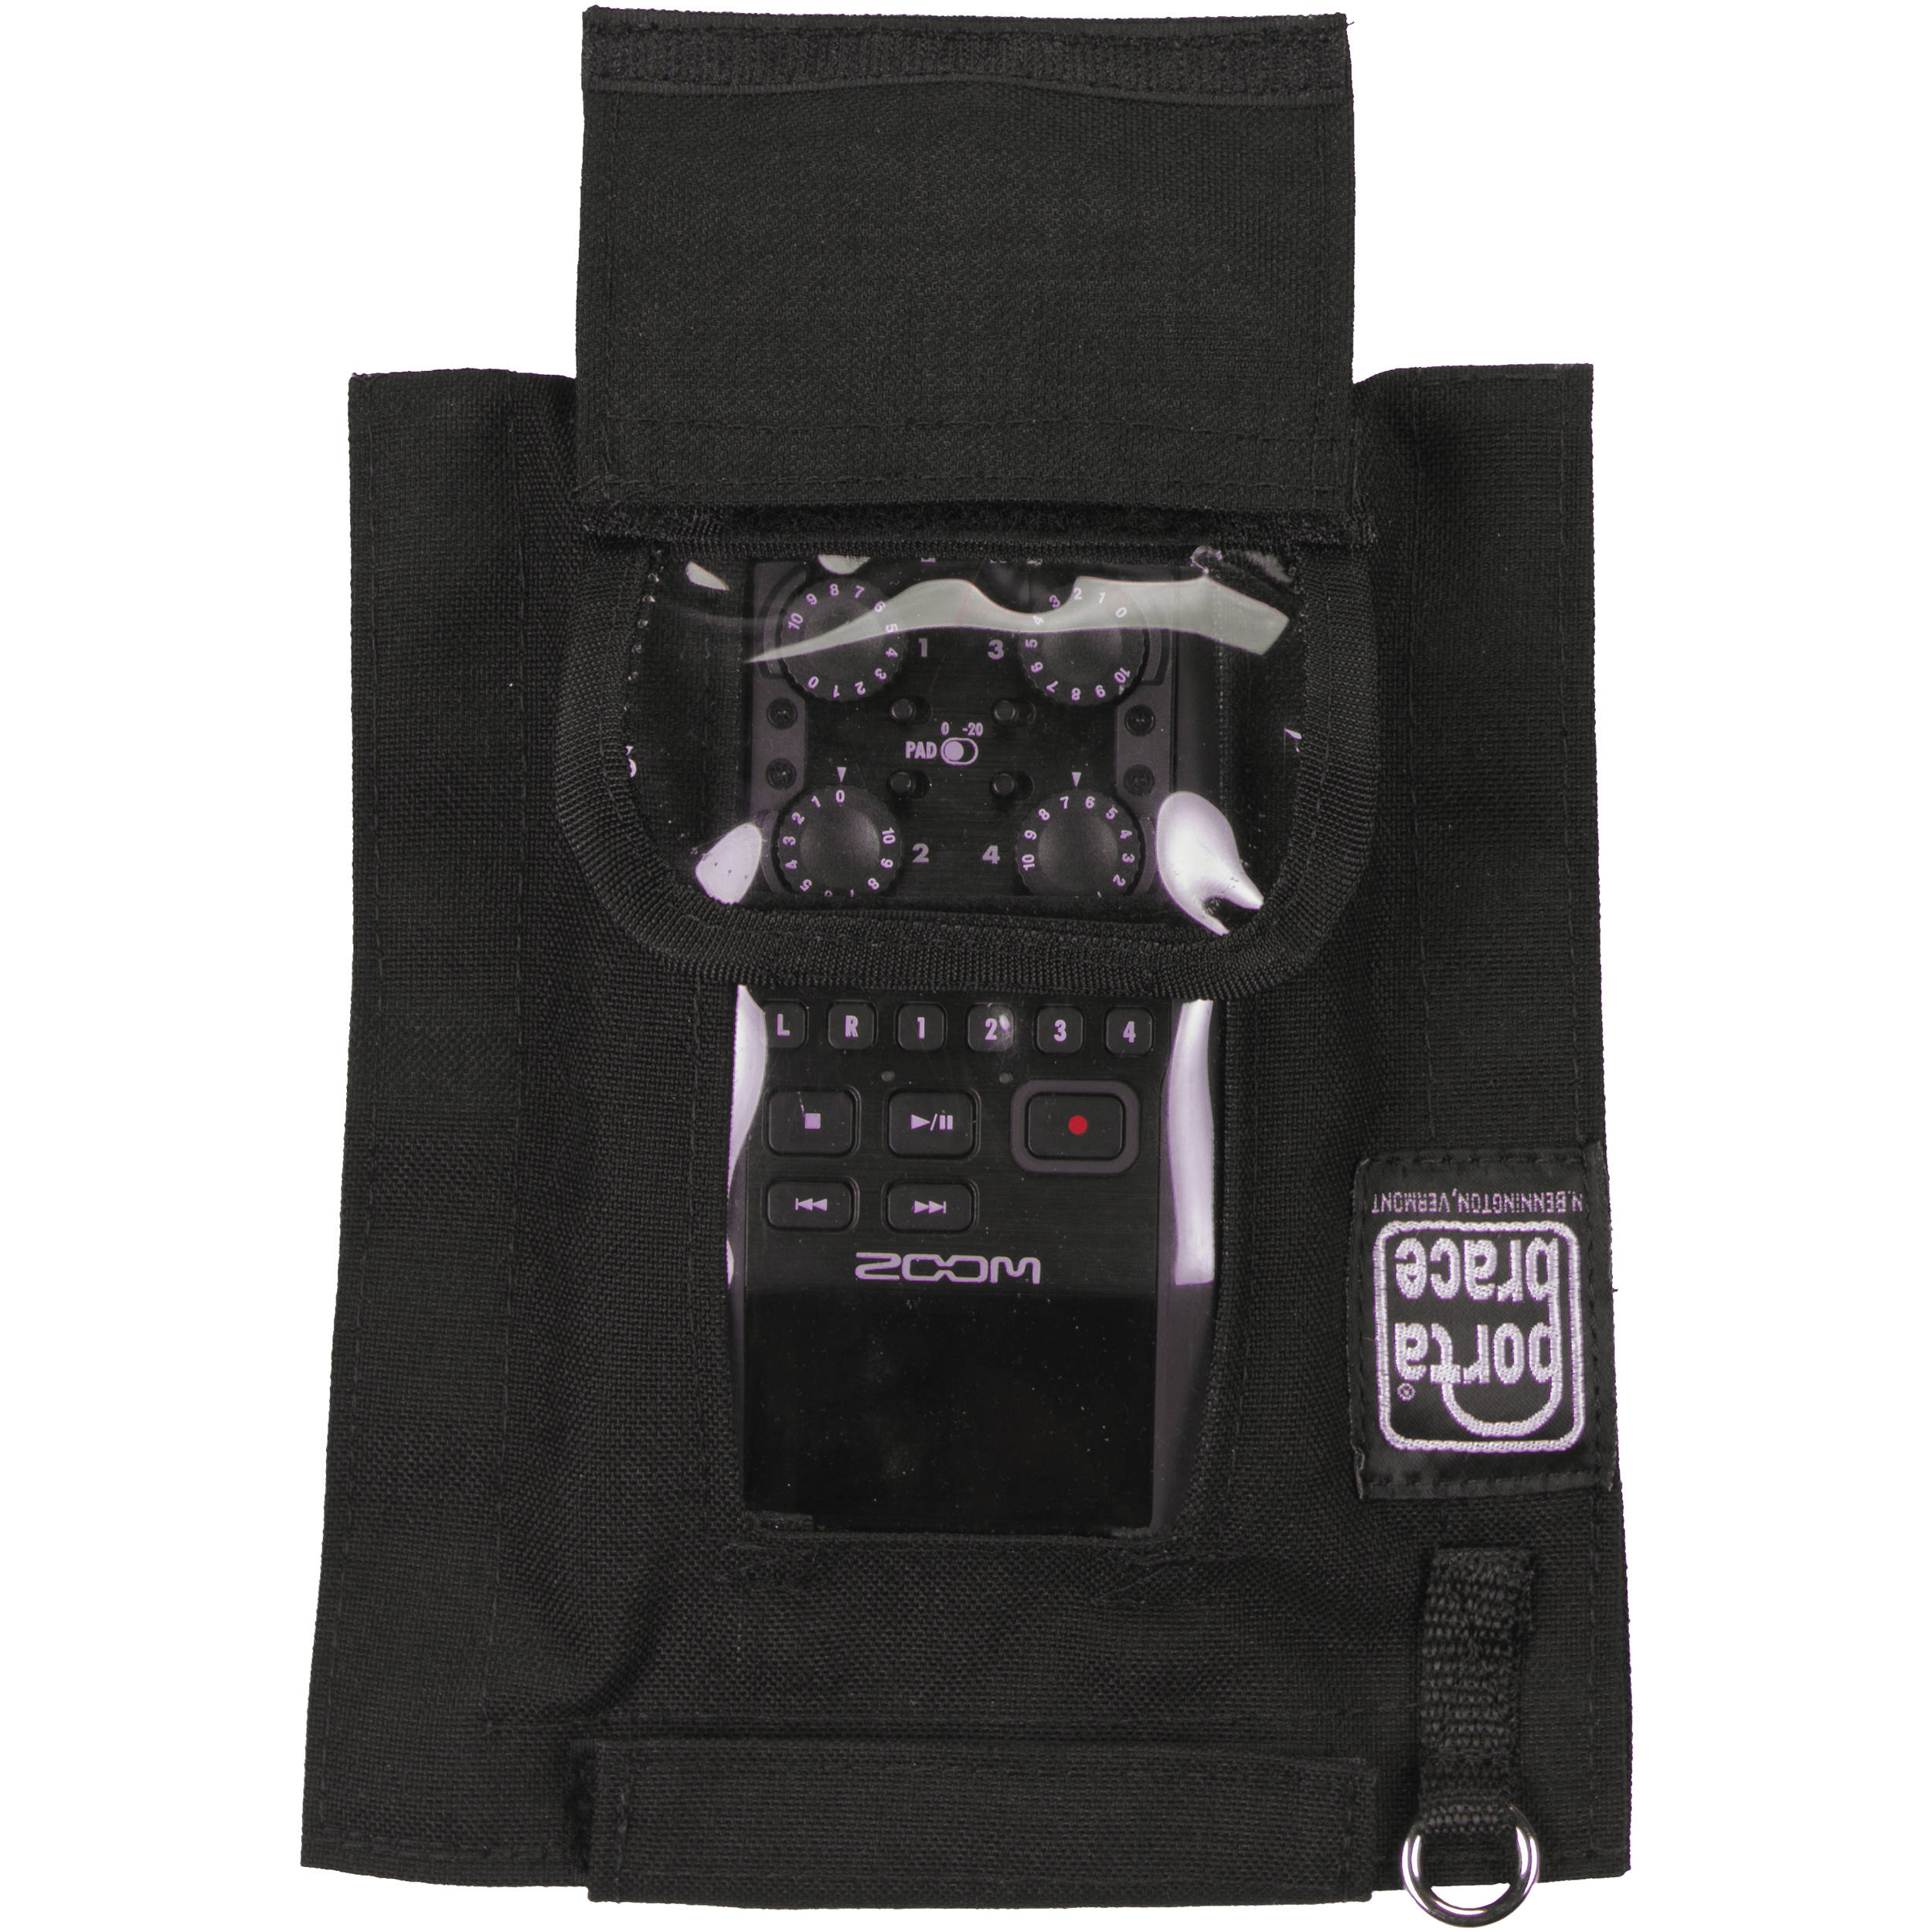 Porta Brace Ar Zh6 Case For Zoom H6 Pro Handy Recorder Ar Zh6